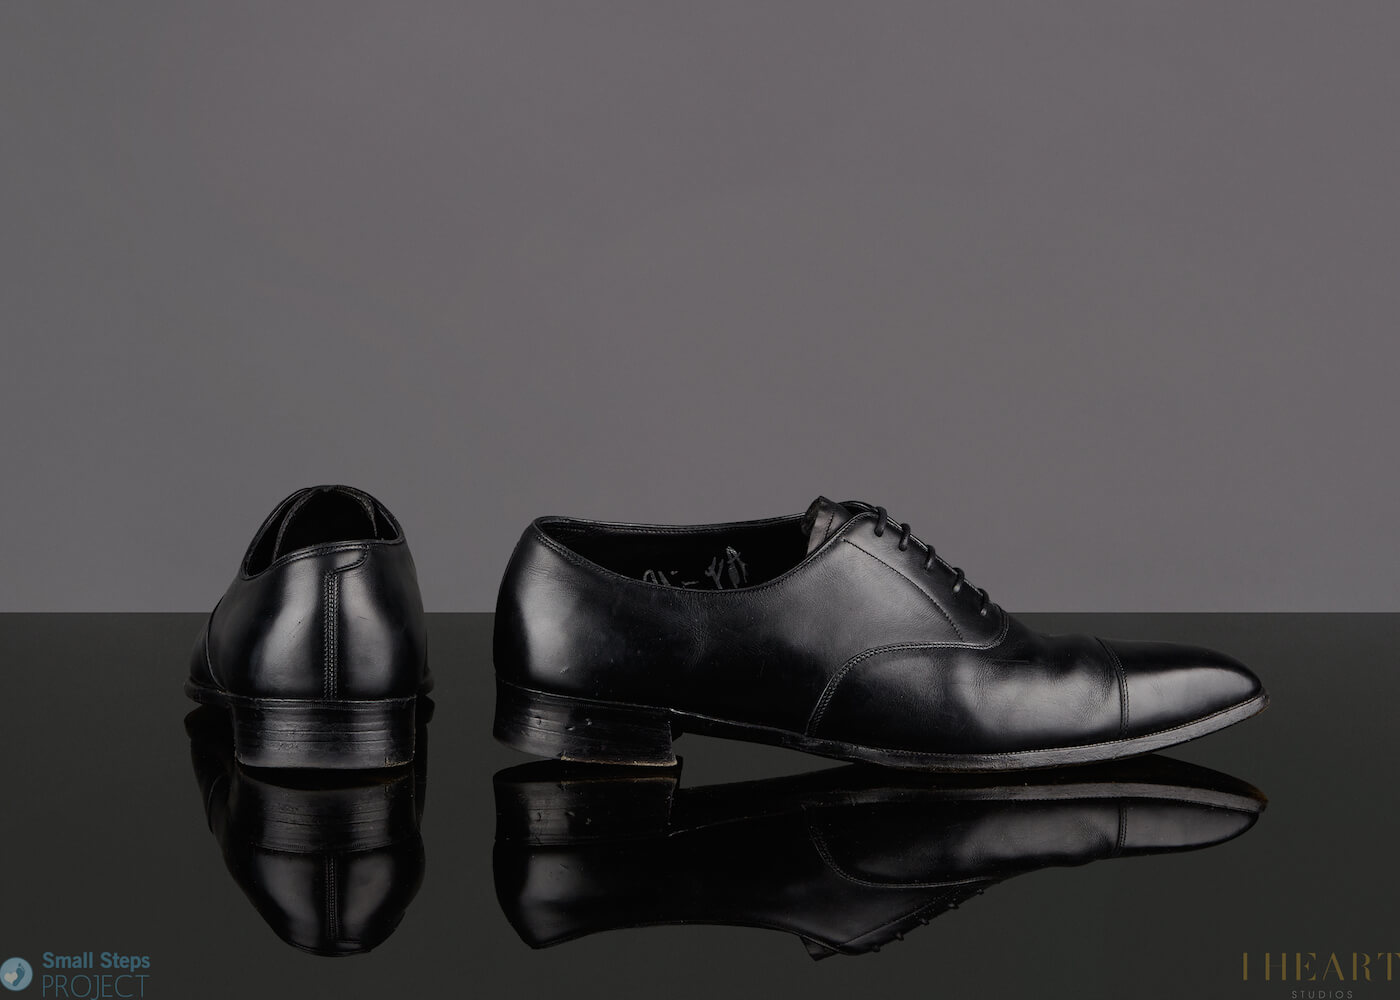 In 2014, Colin donated the shoes he wore as his character in his movie Kingsman: The Secret Service